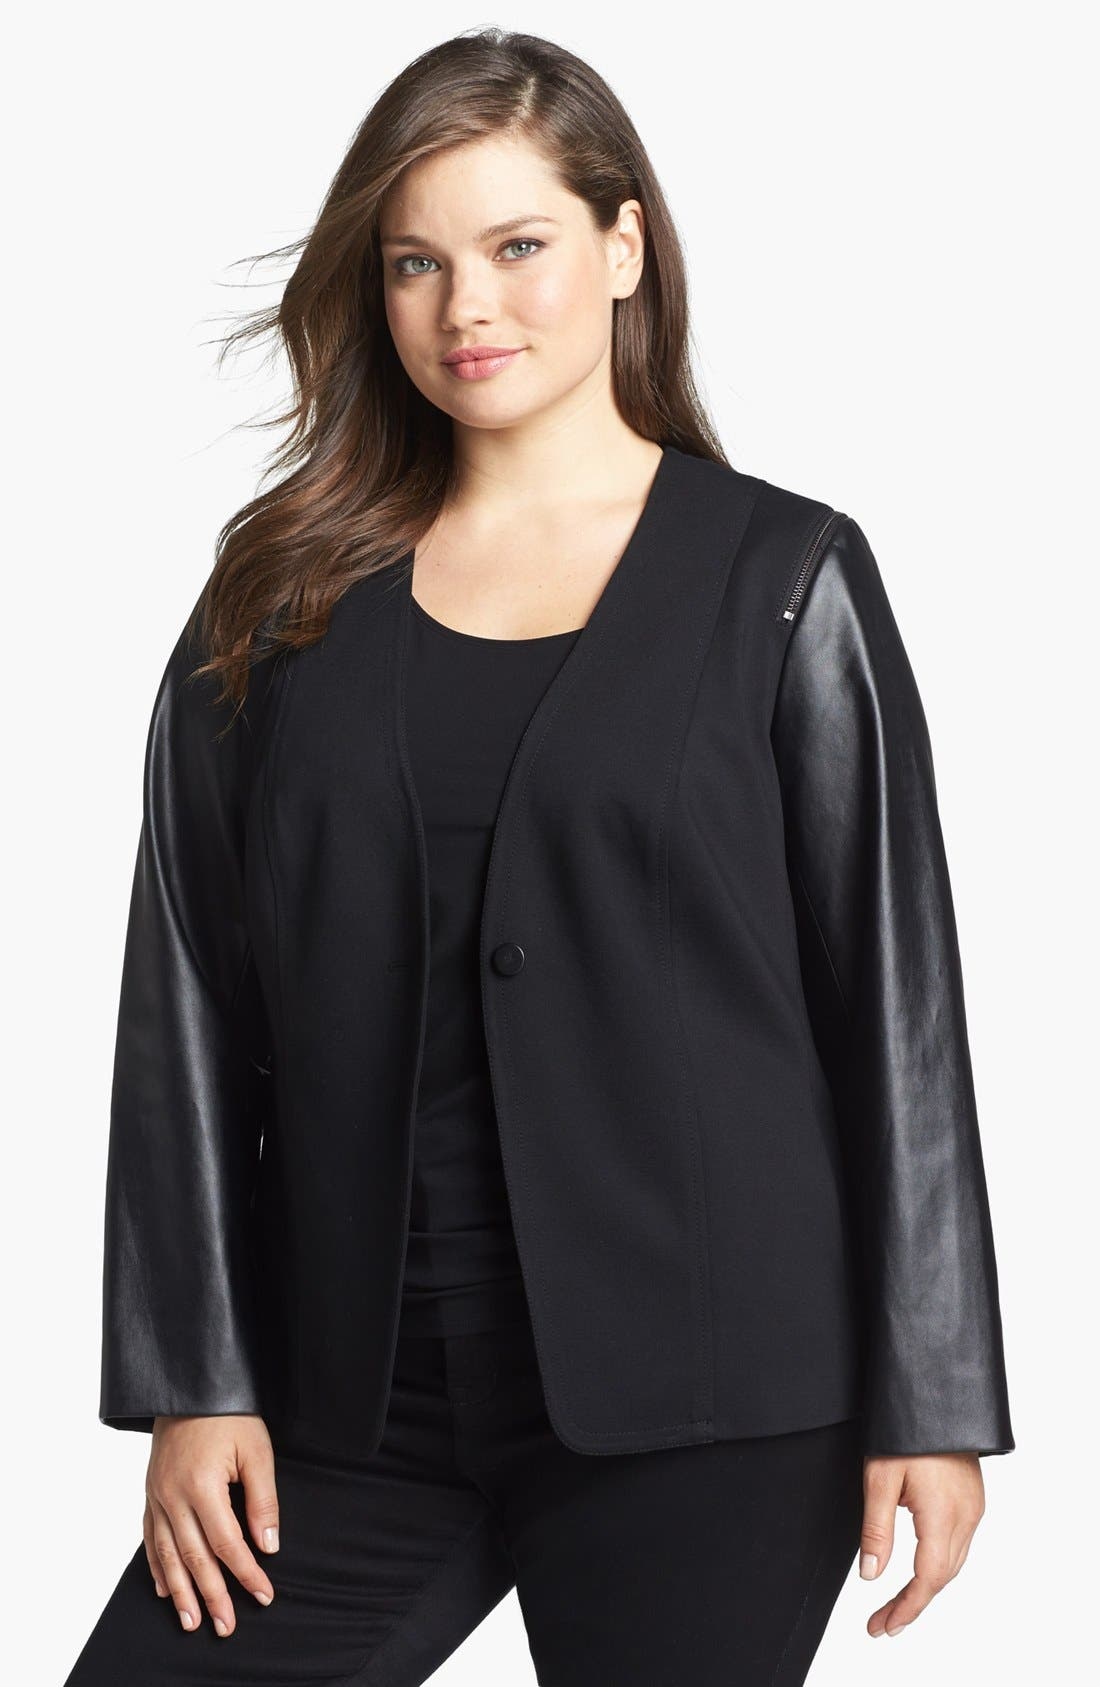 Alternate Image 1 Selected - Vince Camuto Faux Leather & Knit Jacket (Plus Size)